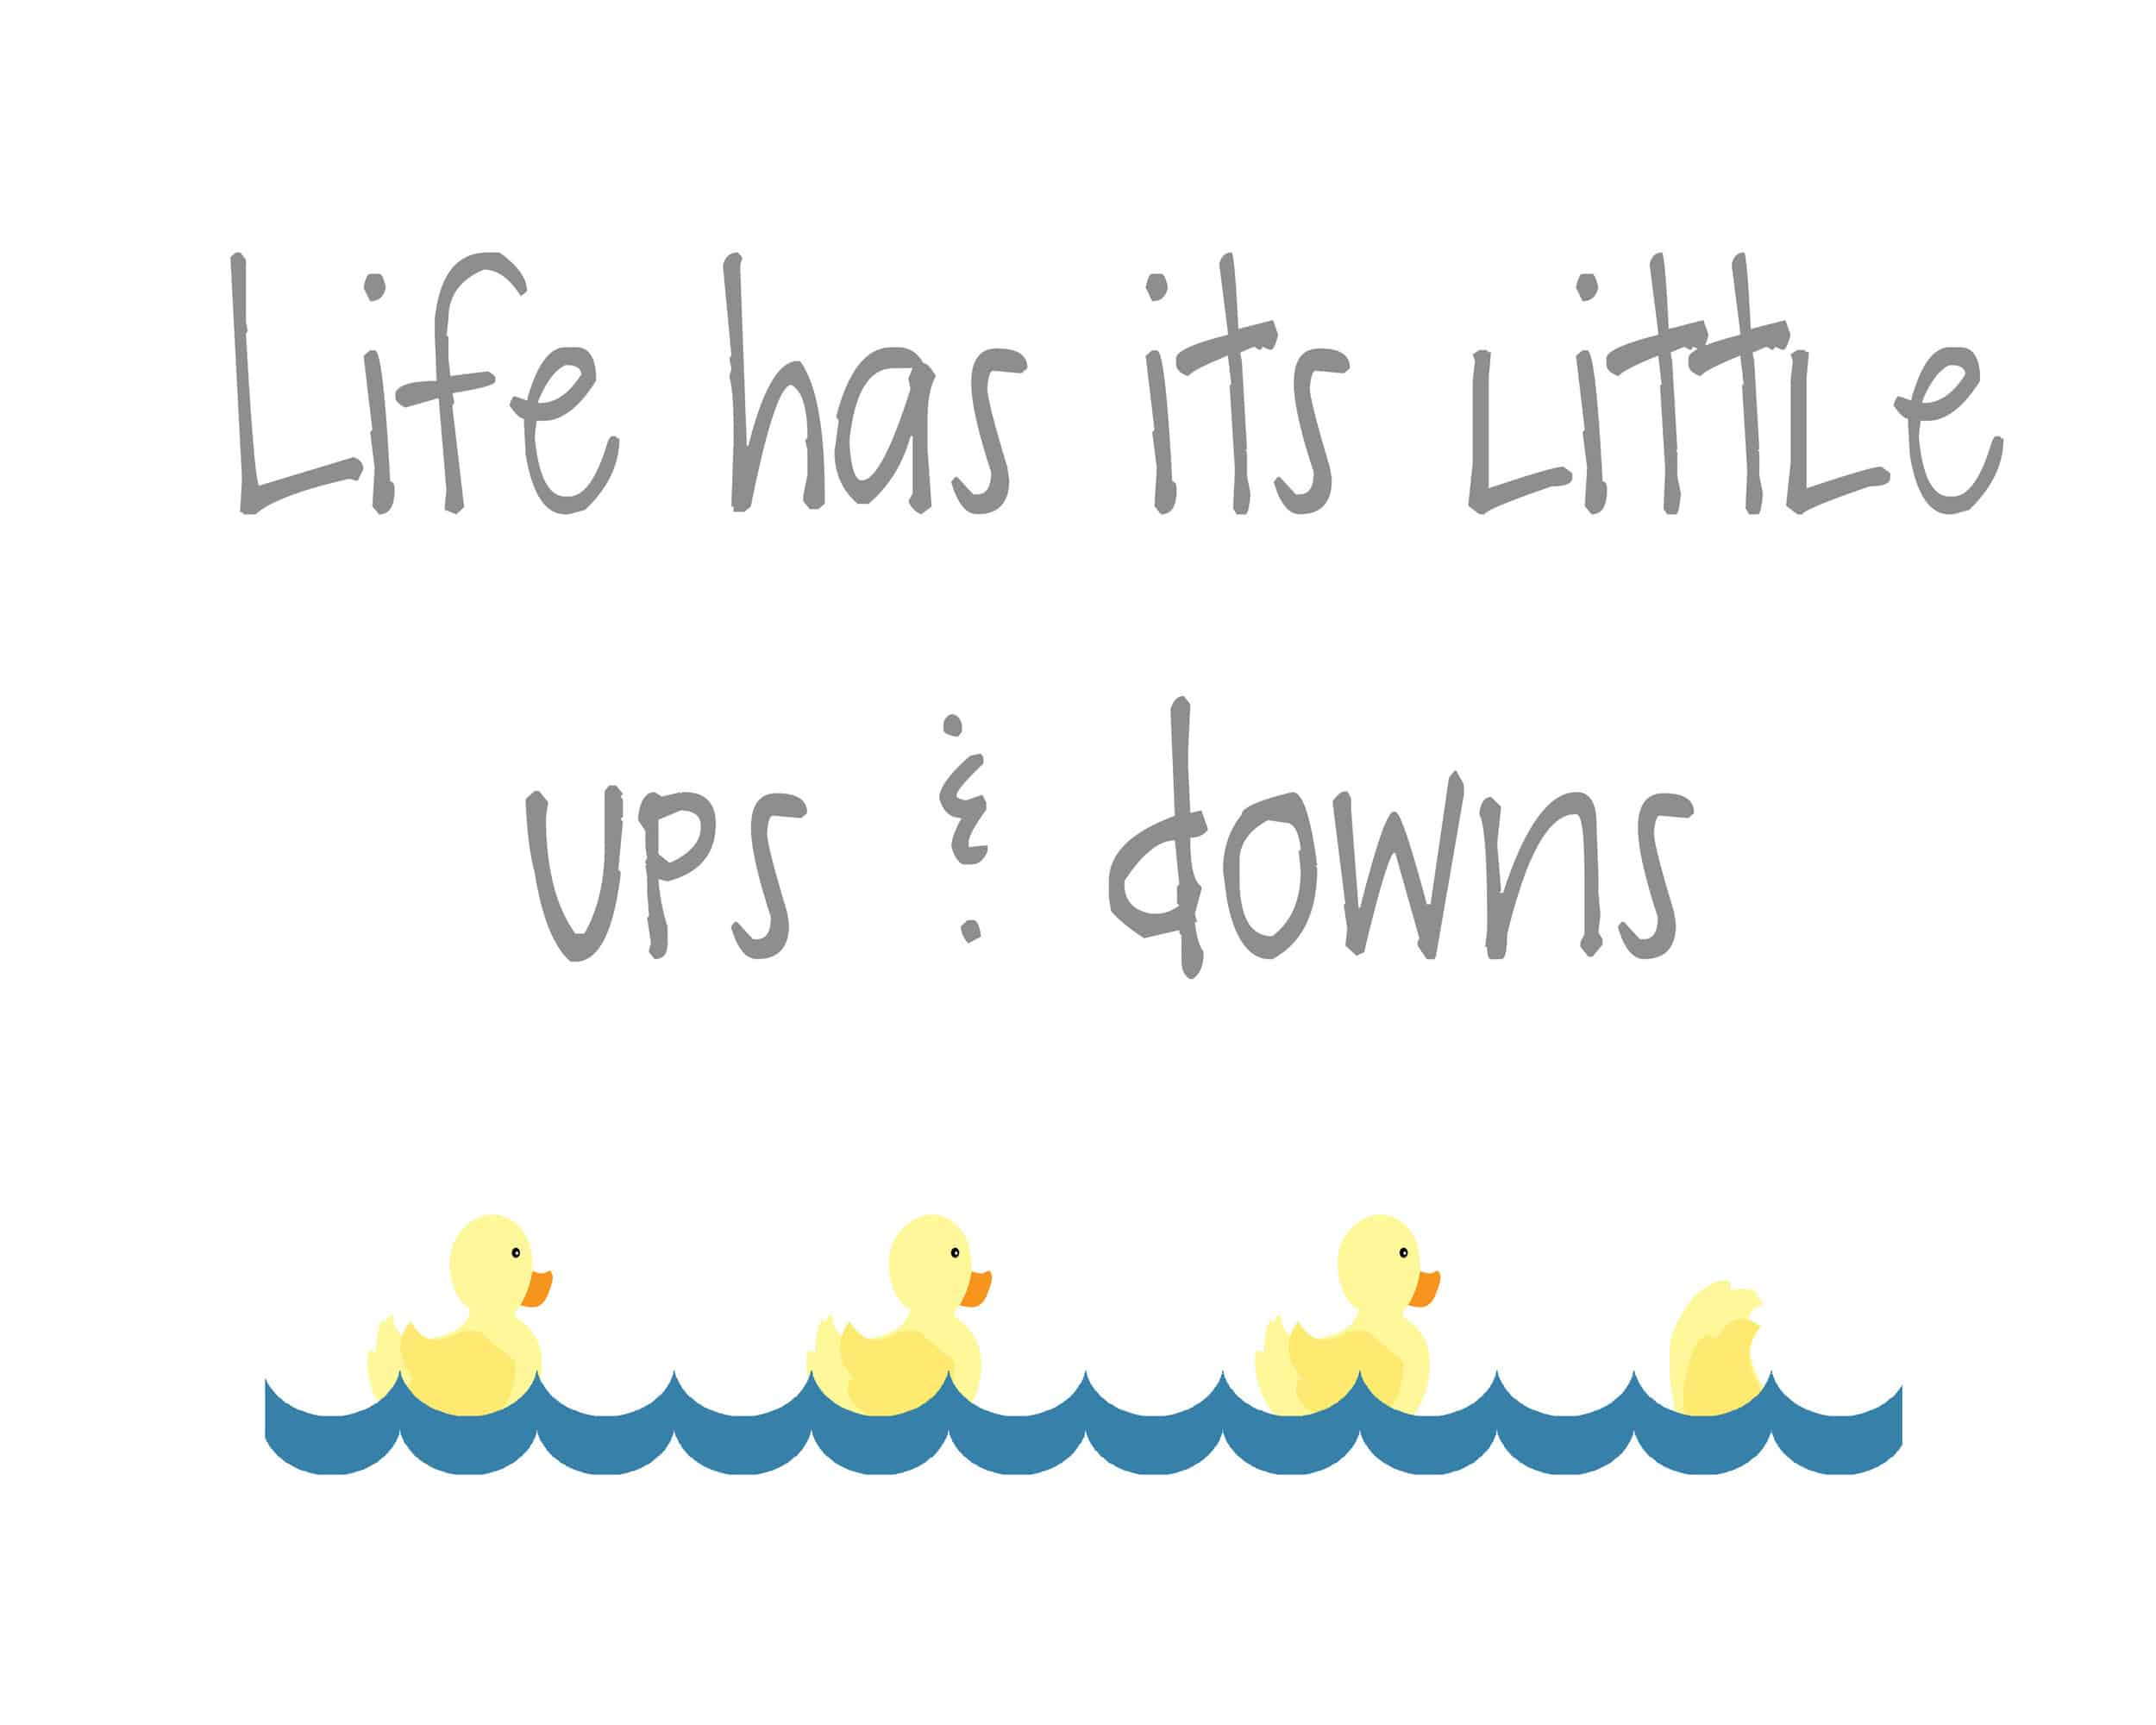 """an essay on the ups and downs of life Everybody has """"ups and downs""""in life the """"ups"""" are when things are going just the way we think they should be the """"downs"""" are when we get all sorts of problems and things look like they are not going so good in this essay, i will try to show how to solve these problems through."""